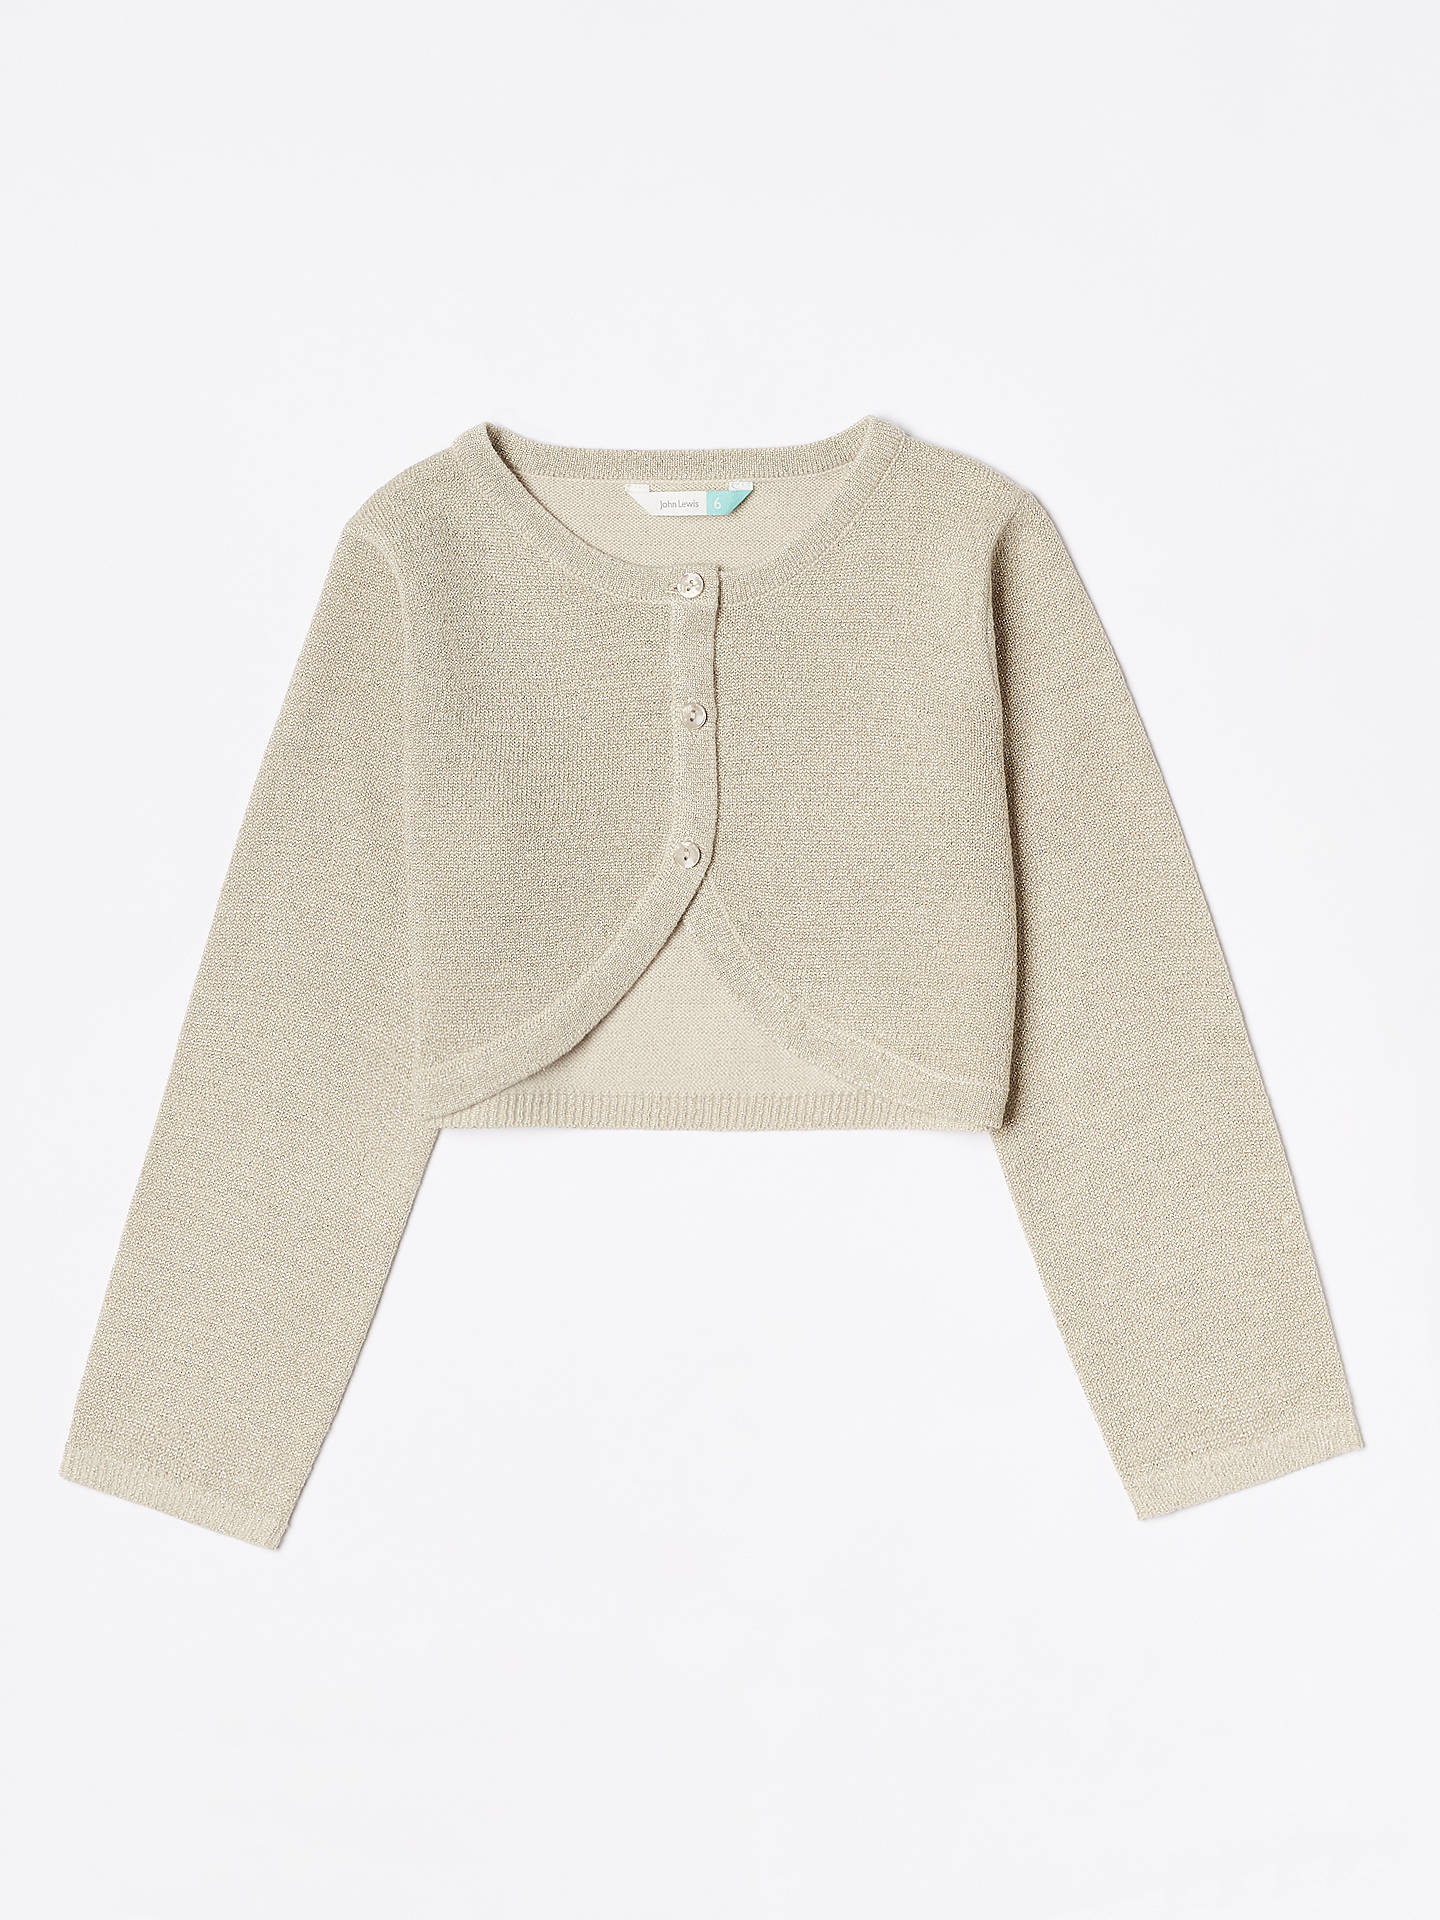 BuyJohn Lewis & Partners Girls' Party Cardigan, Cream, 2 years Online at johnlewis.com